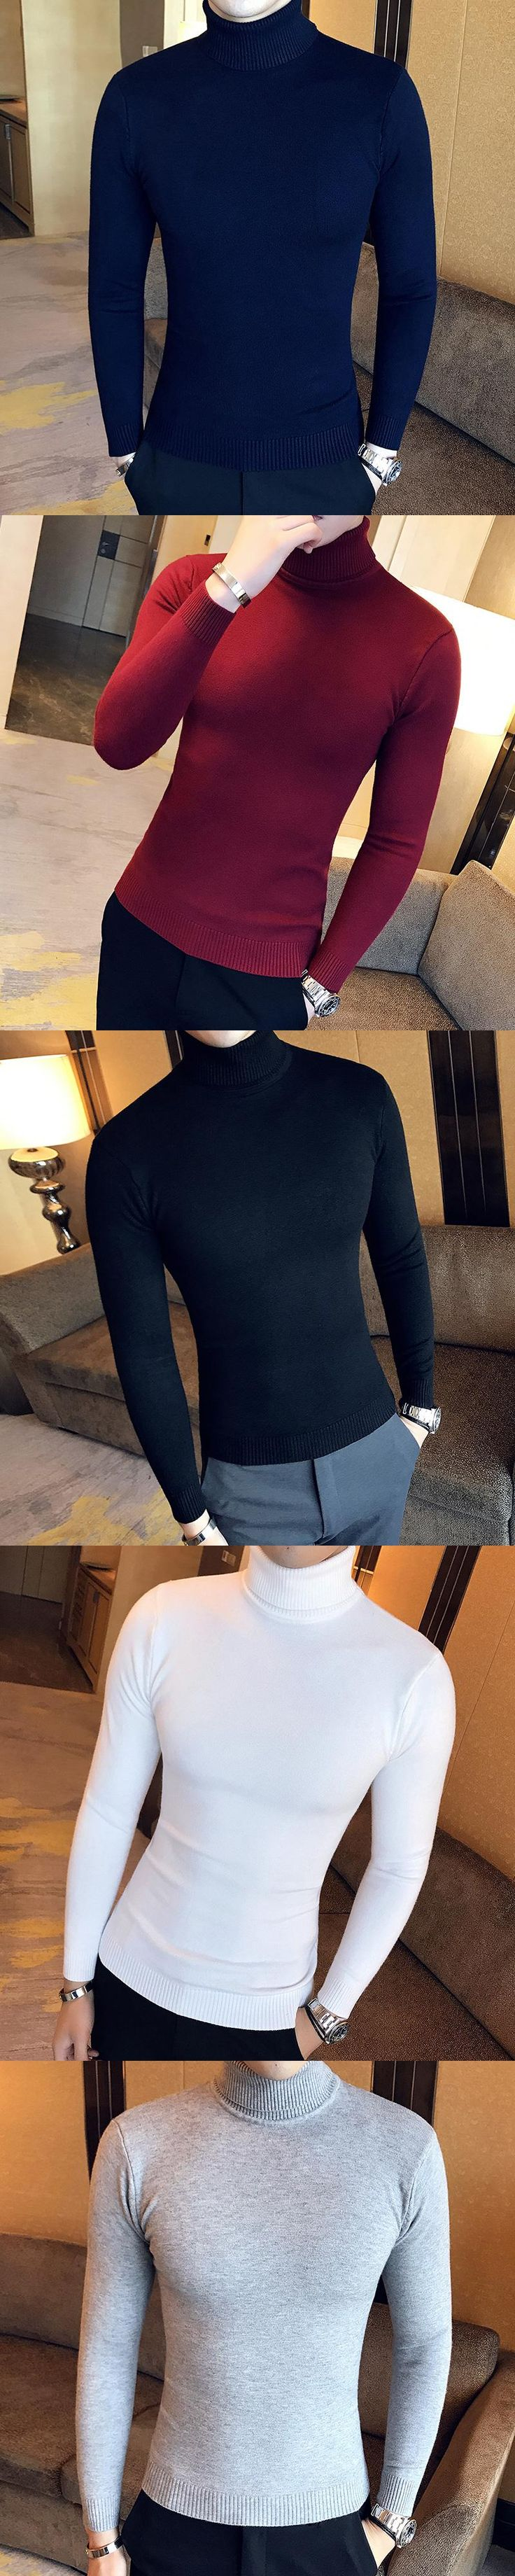 Basic Sweater Men Solid Simple Slim Fit Mens Casual Turtleneck Pullovers Mens Long Sleeve High Collar Knitted Men's Jumpers Hot